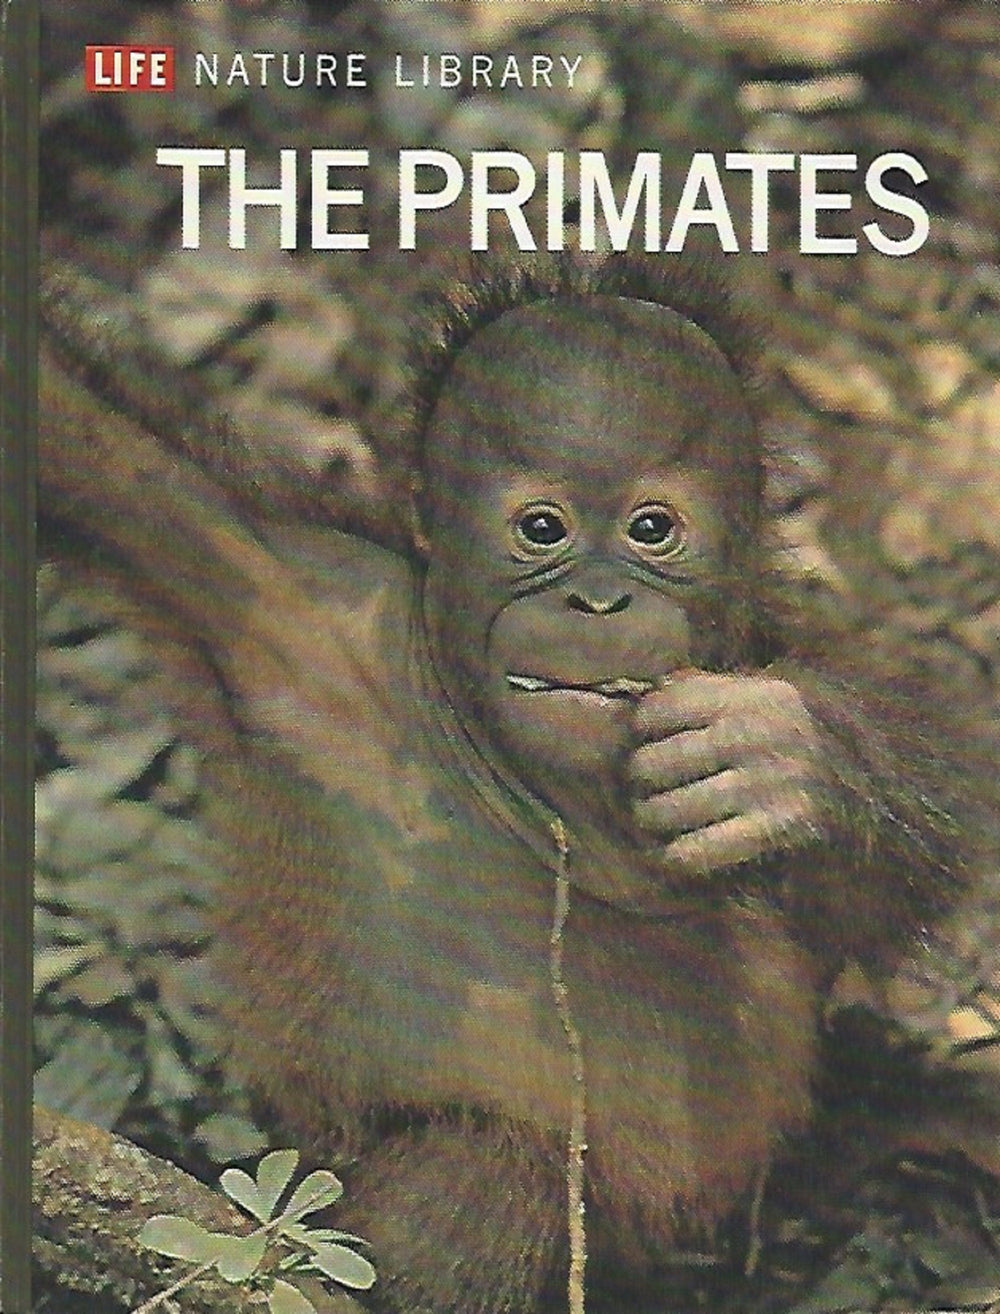 TIME LIFE: Nature Library; The Primates by Sarel Eimerl and Irven DeVore (1968)